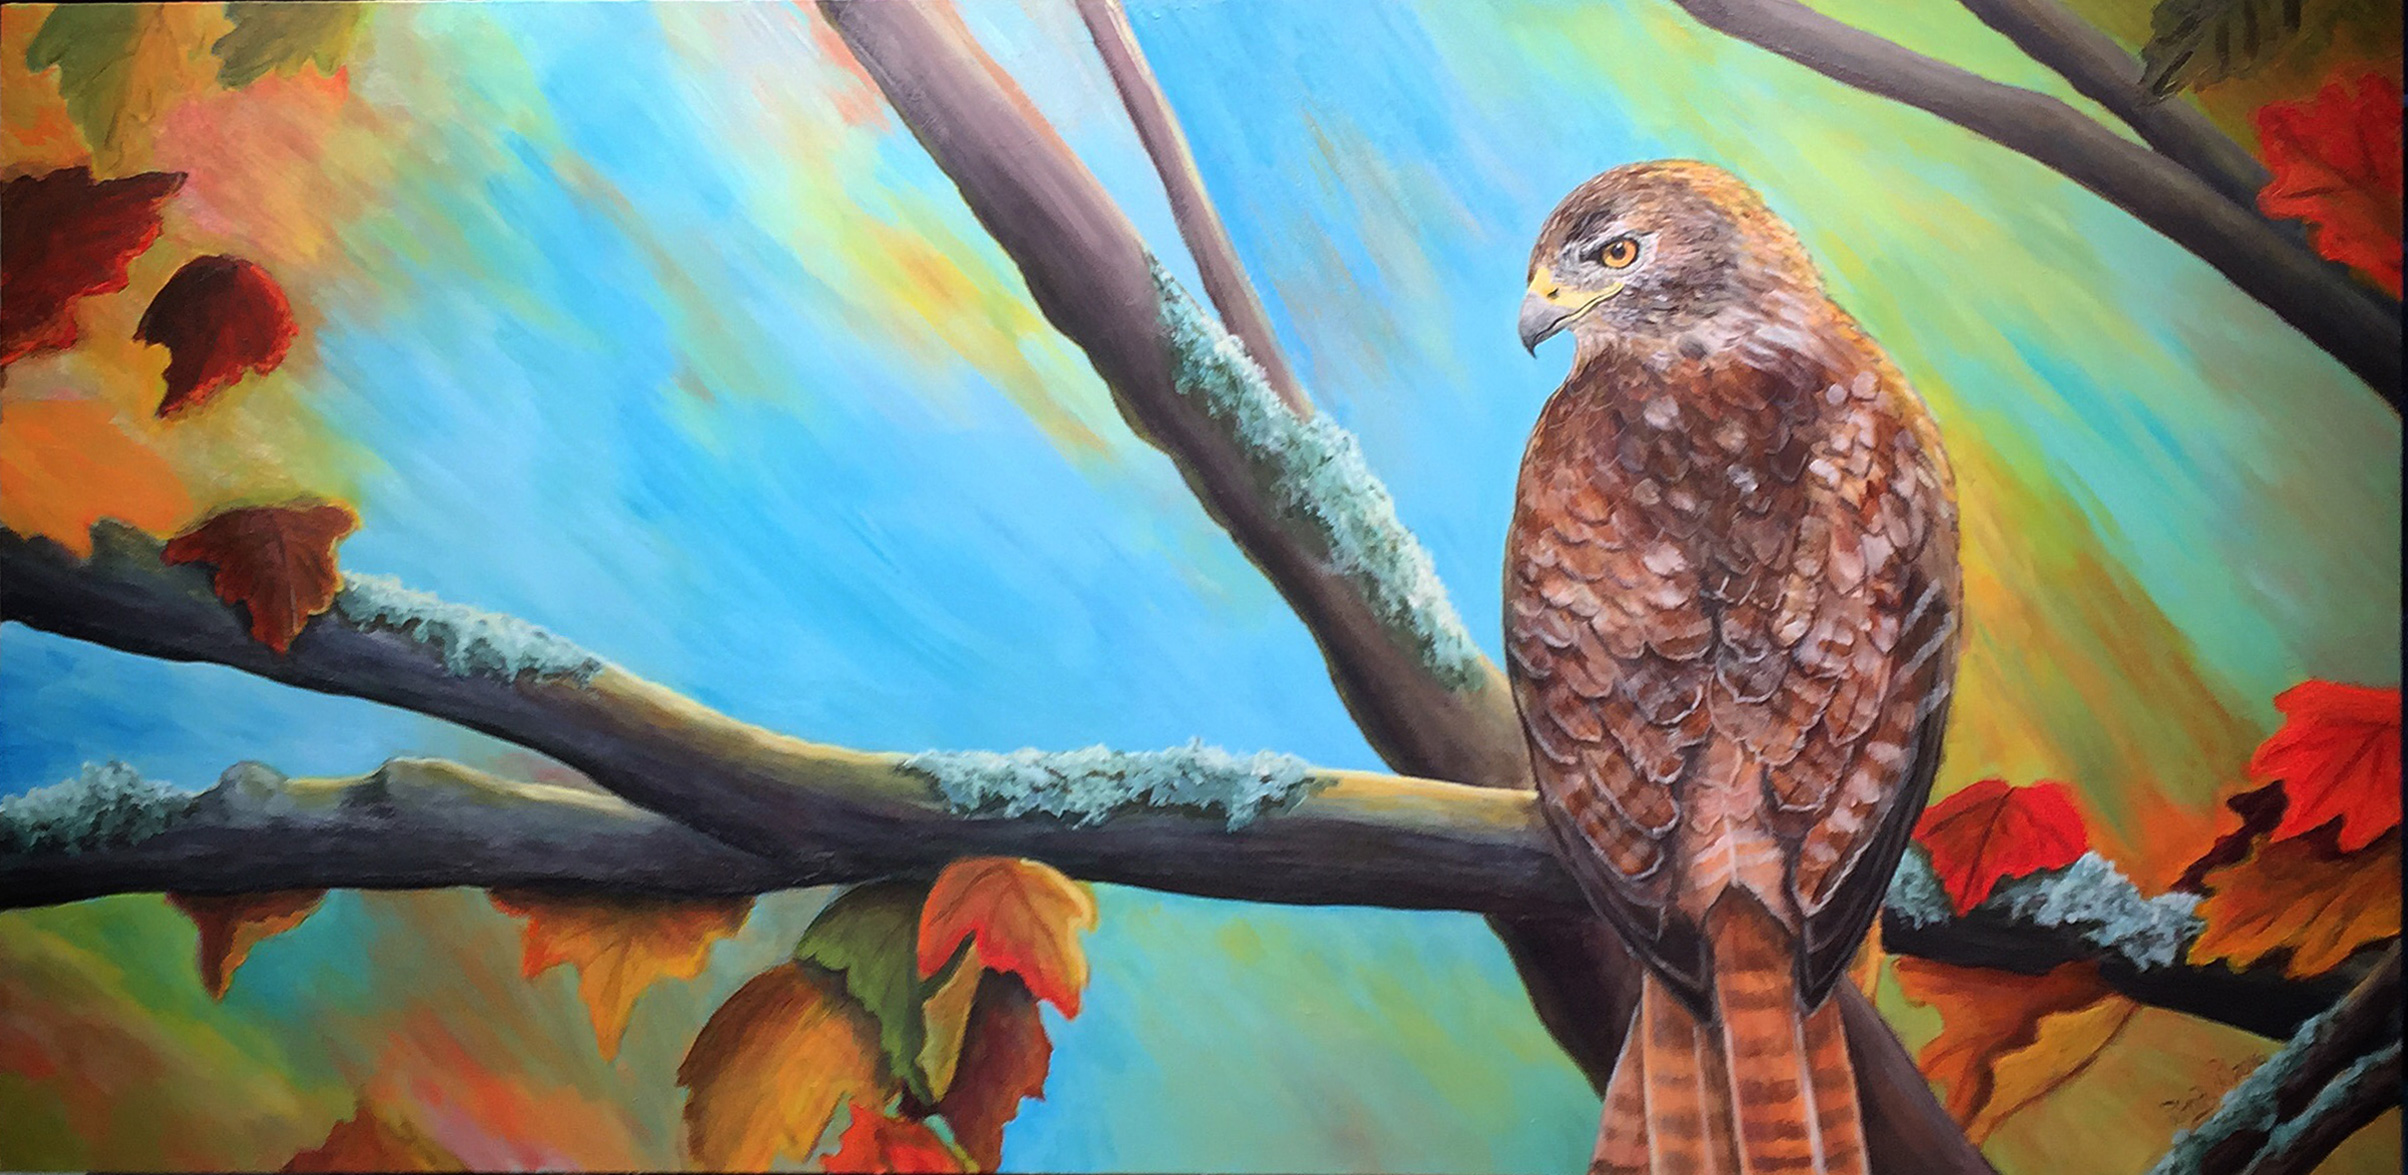 Sir Red Tail ~ Red Tailed Hawk Acrylic on Canvas